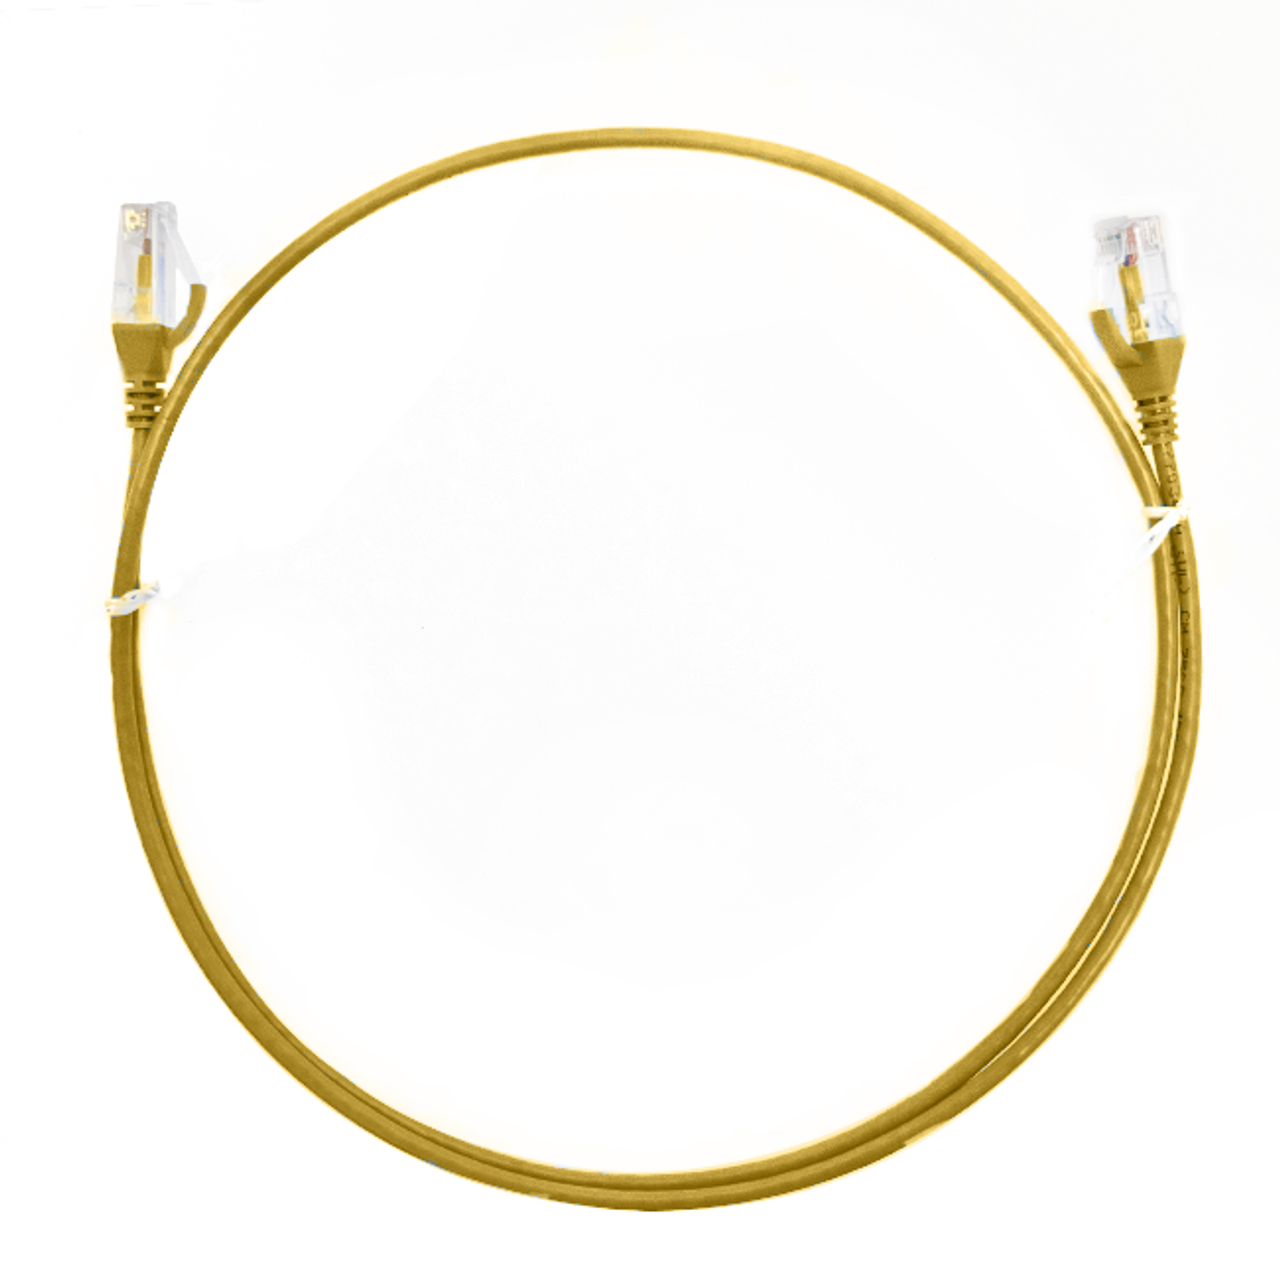 Image for 4m Cat 6 RJ45 RJ45 Ultra Thin LSZH Network Cables  : Yellow CX Computer Superstore